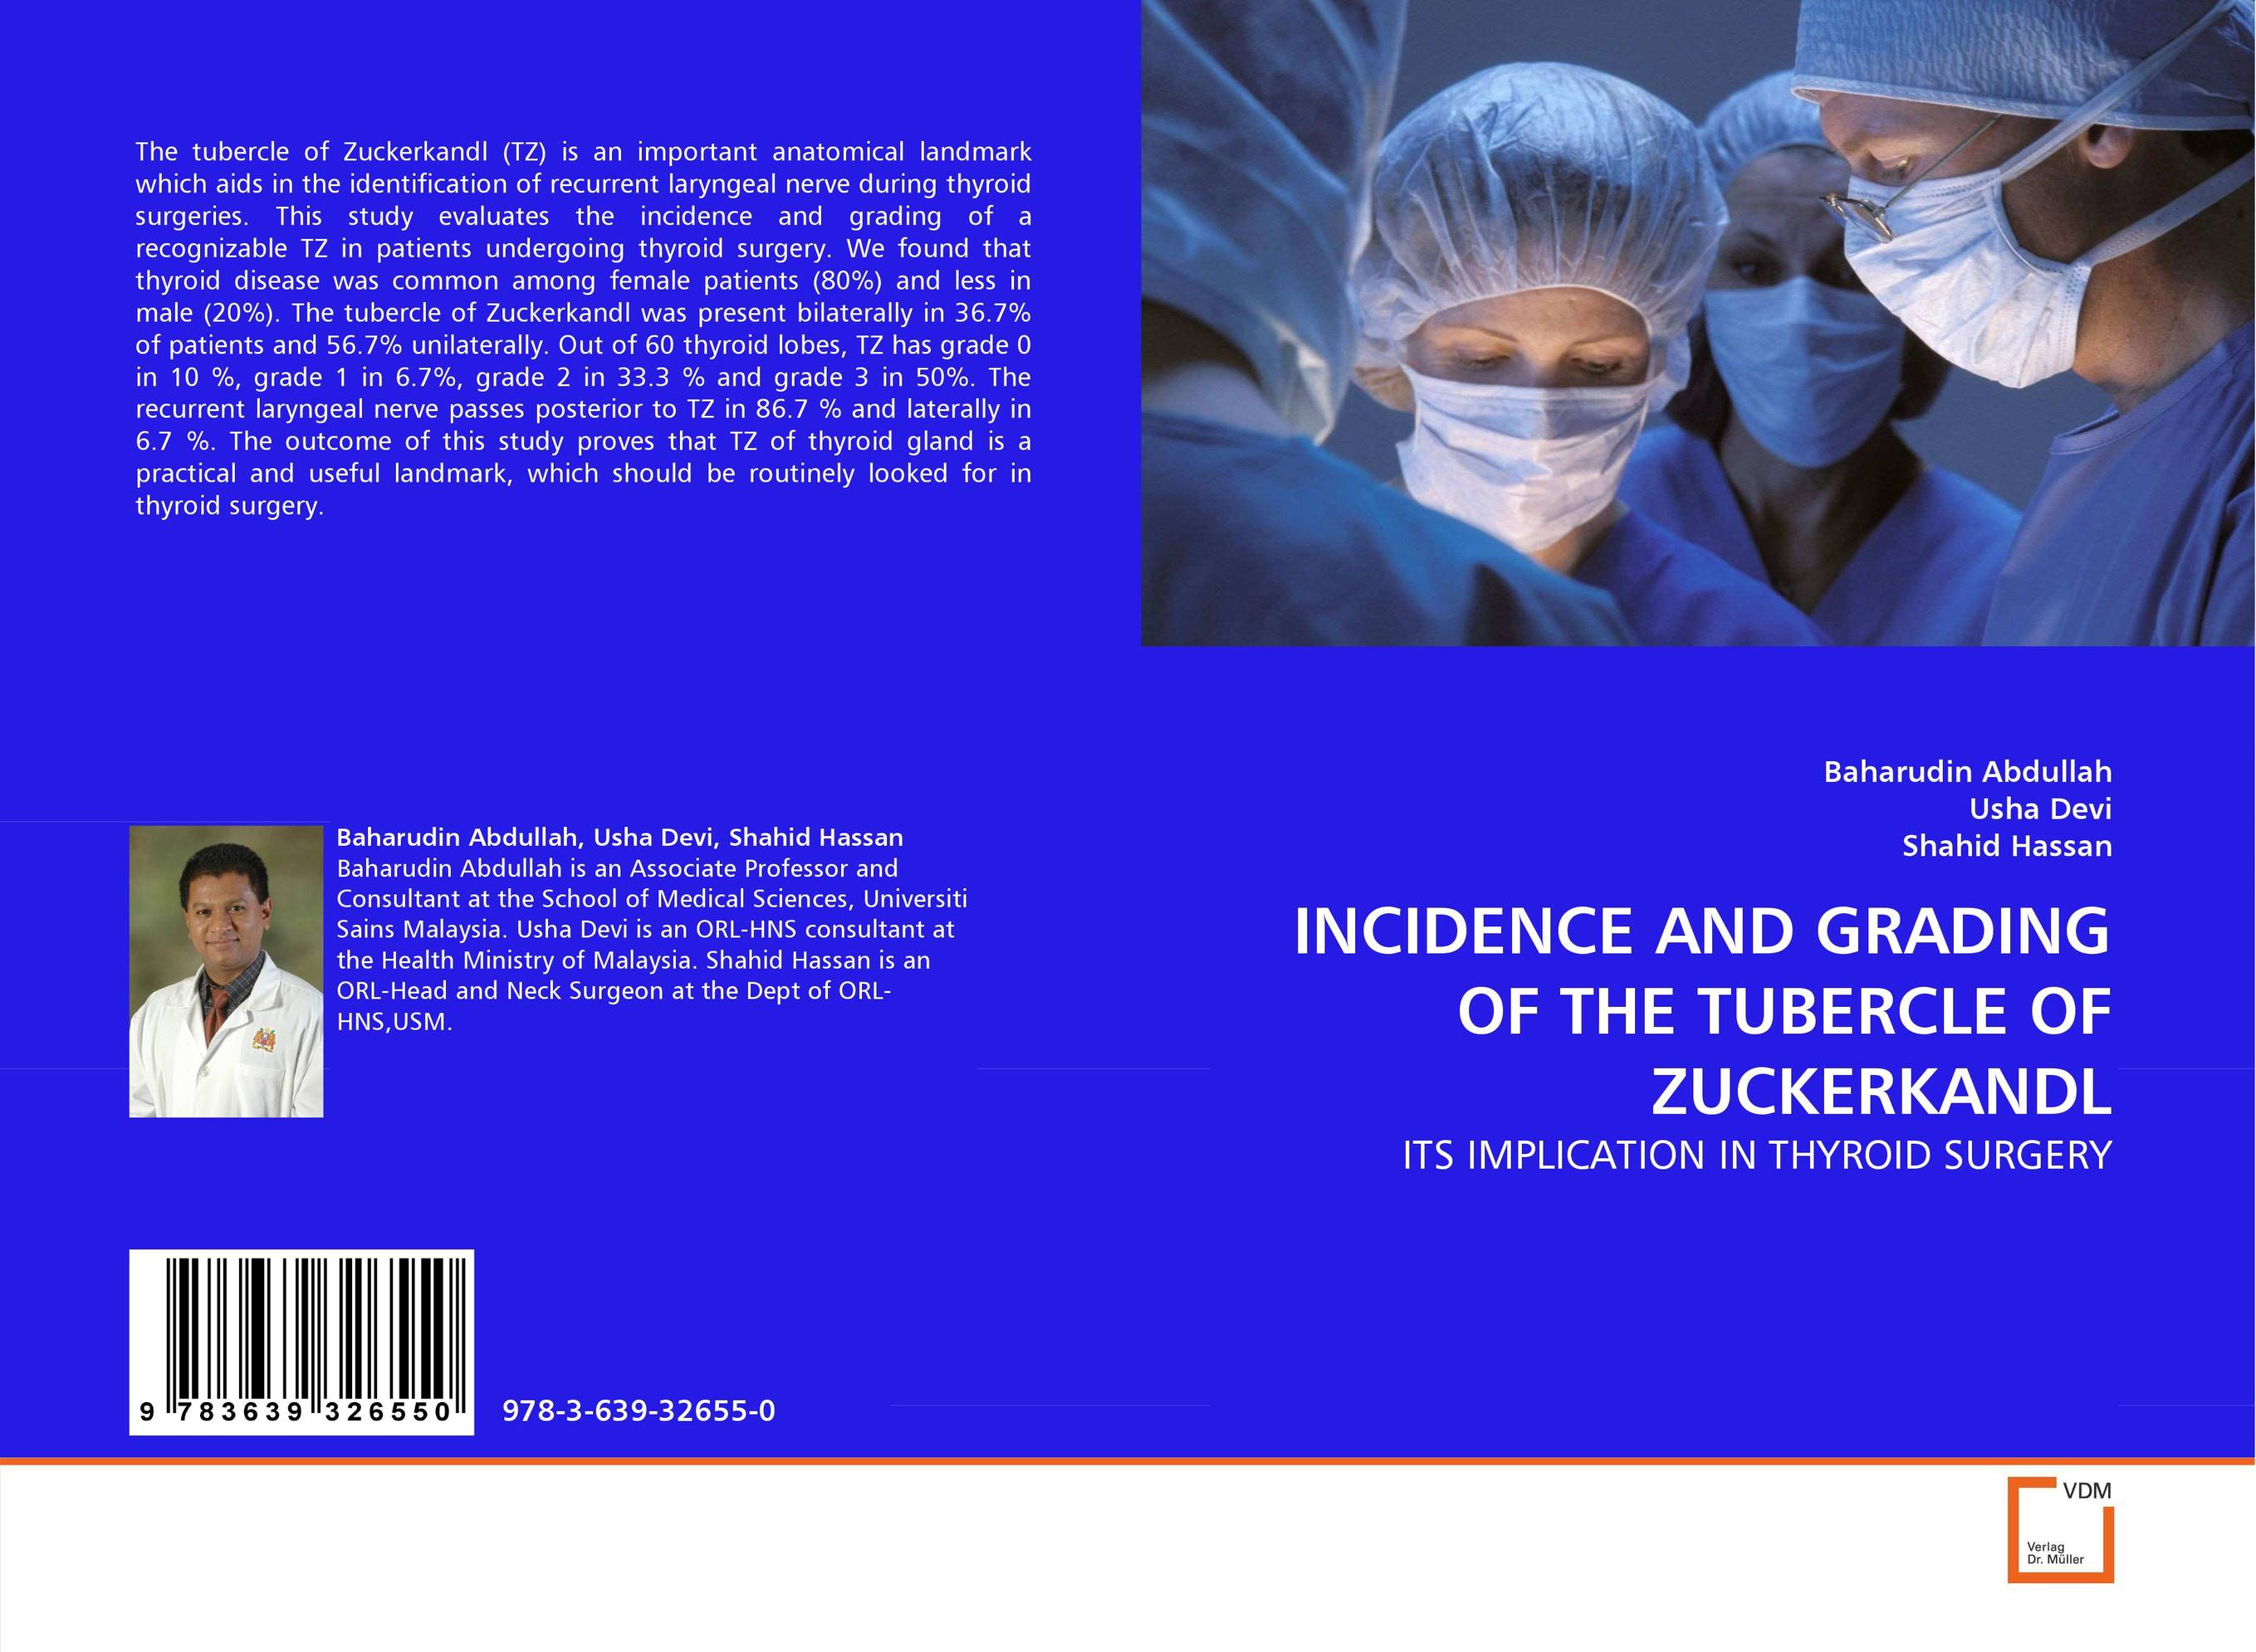 INCIDENCE AND GRADING OF THE TUBERCLE OF ZUCKERKANDL